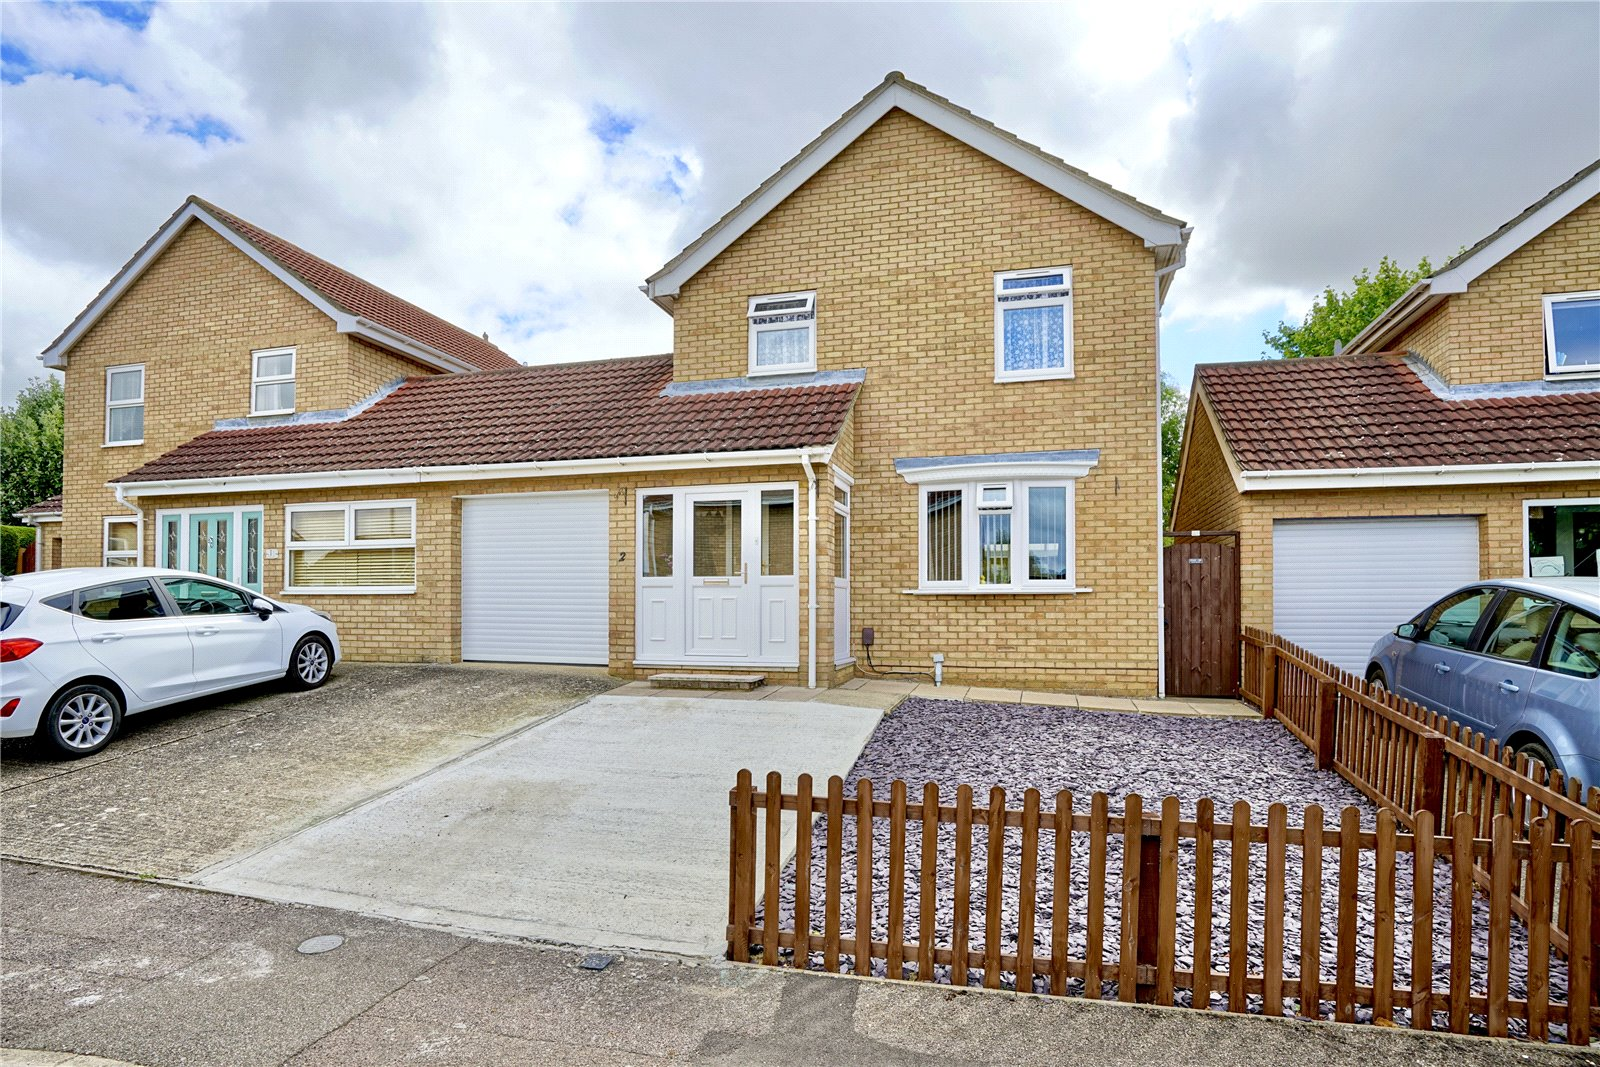 3 bed house for sale in Eaton Socon, PE19 8PN, PE19